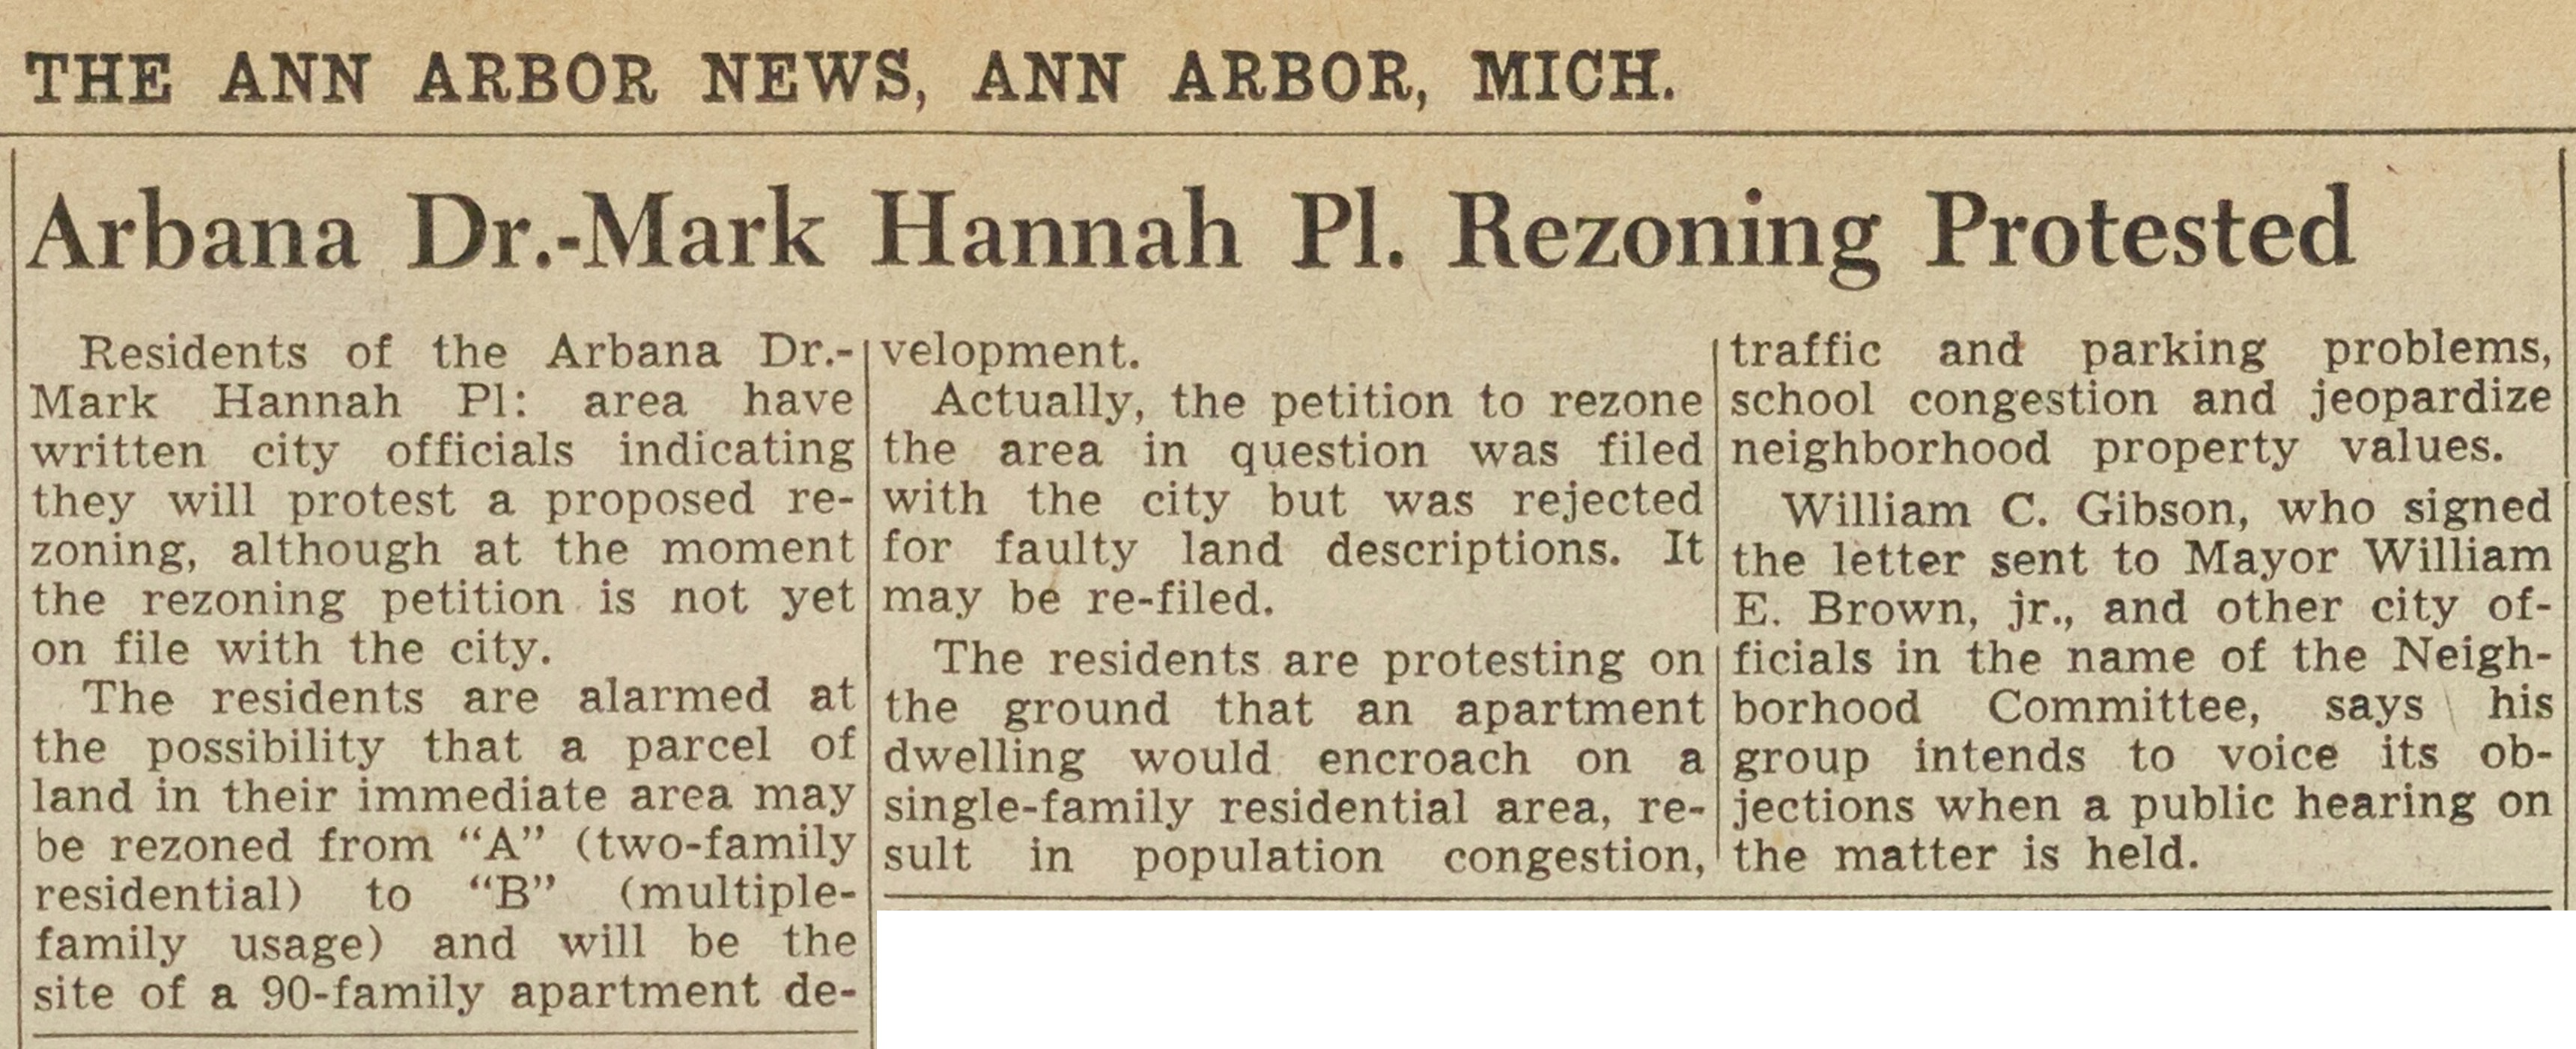 Arbana Dr. - Mark Hannah Pl. Rezoning Protested image